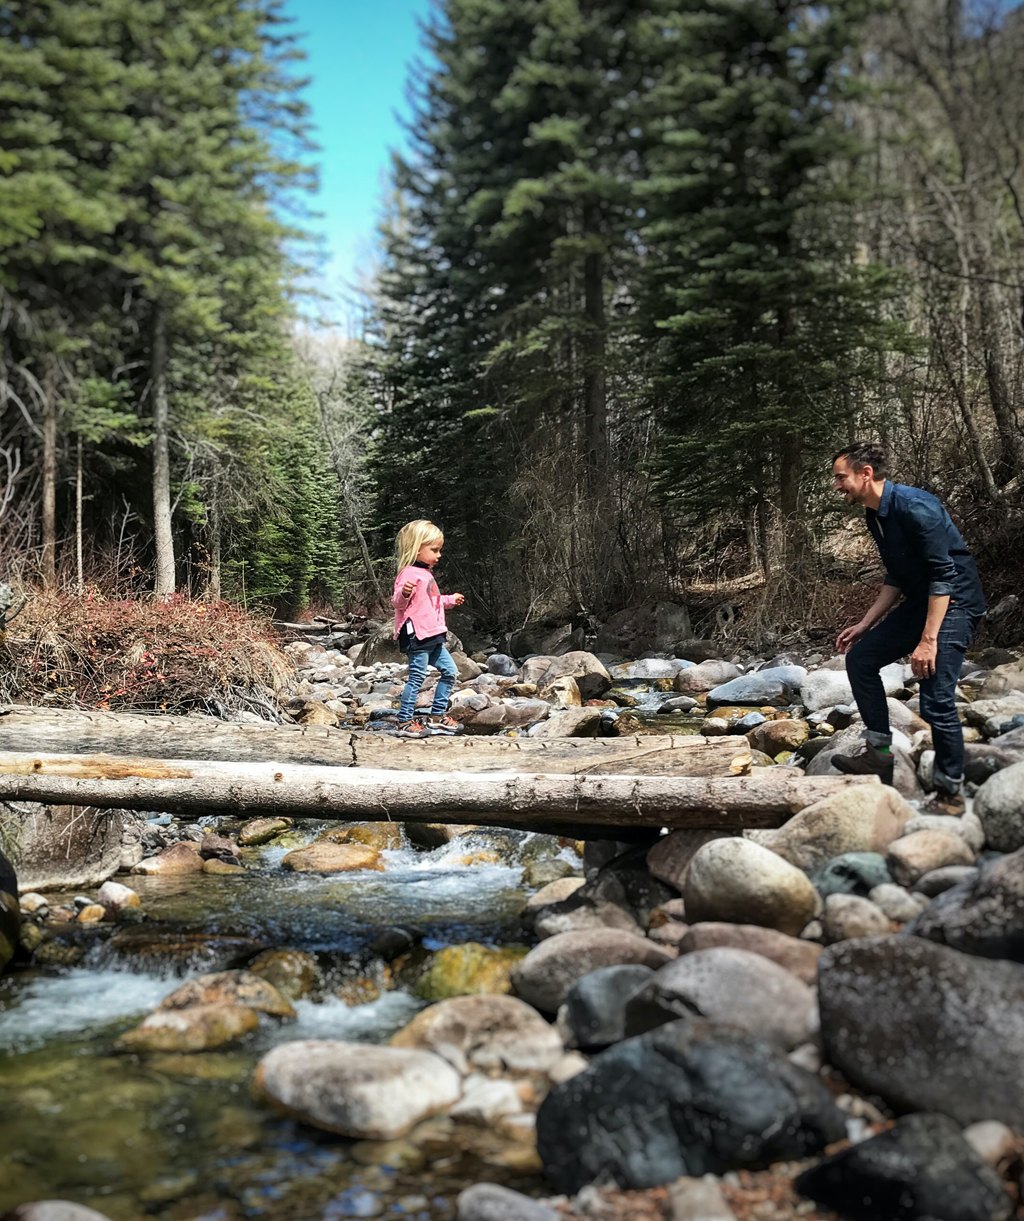 Daughter Walking Across a Fallen Tree to Her Father's Outstretched Arms on a Park City Hike